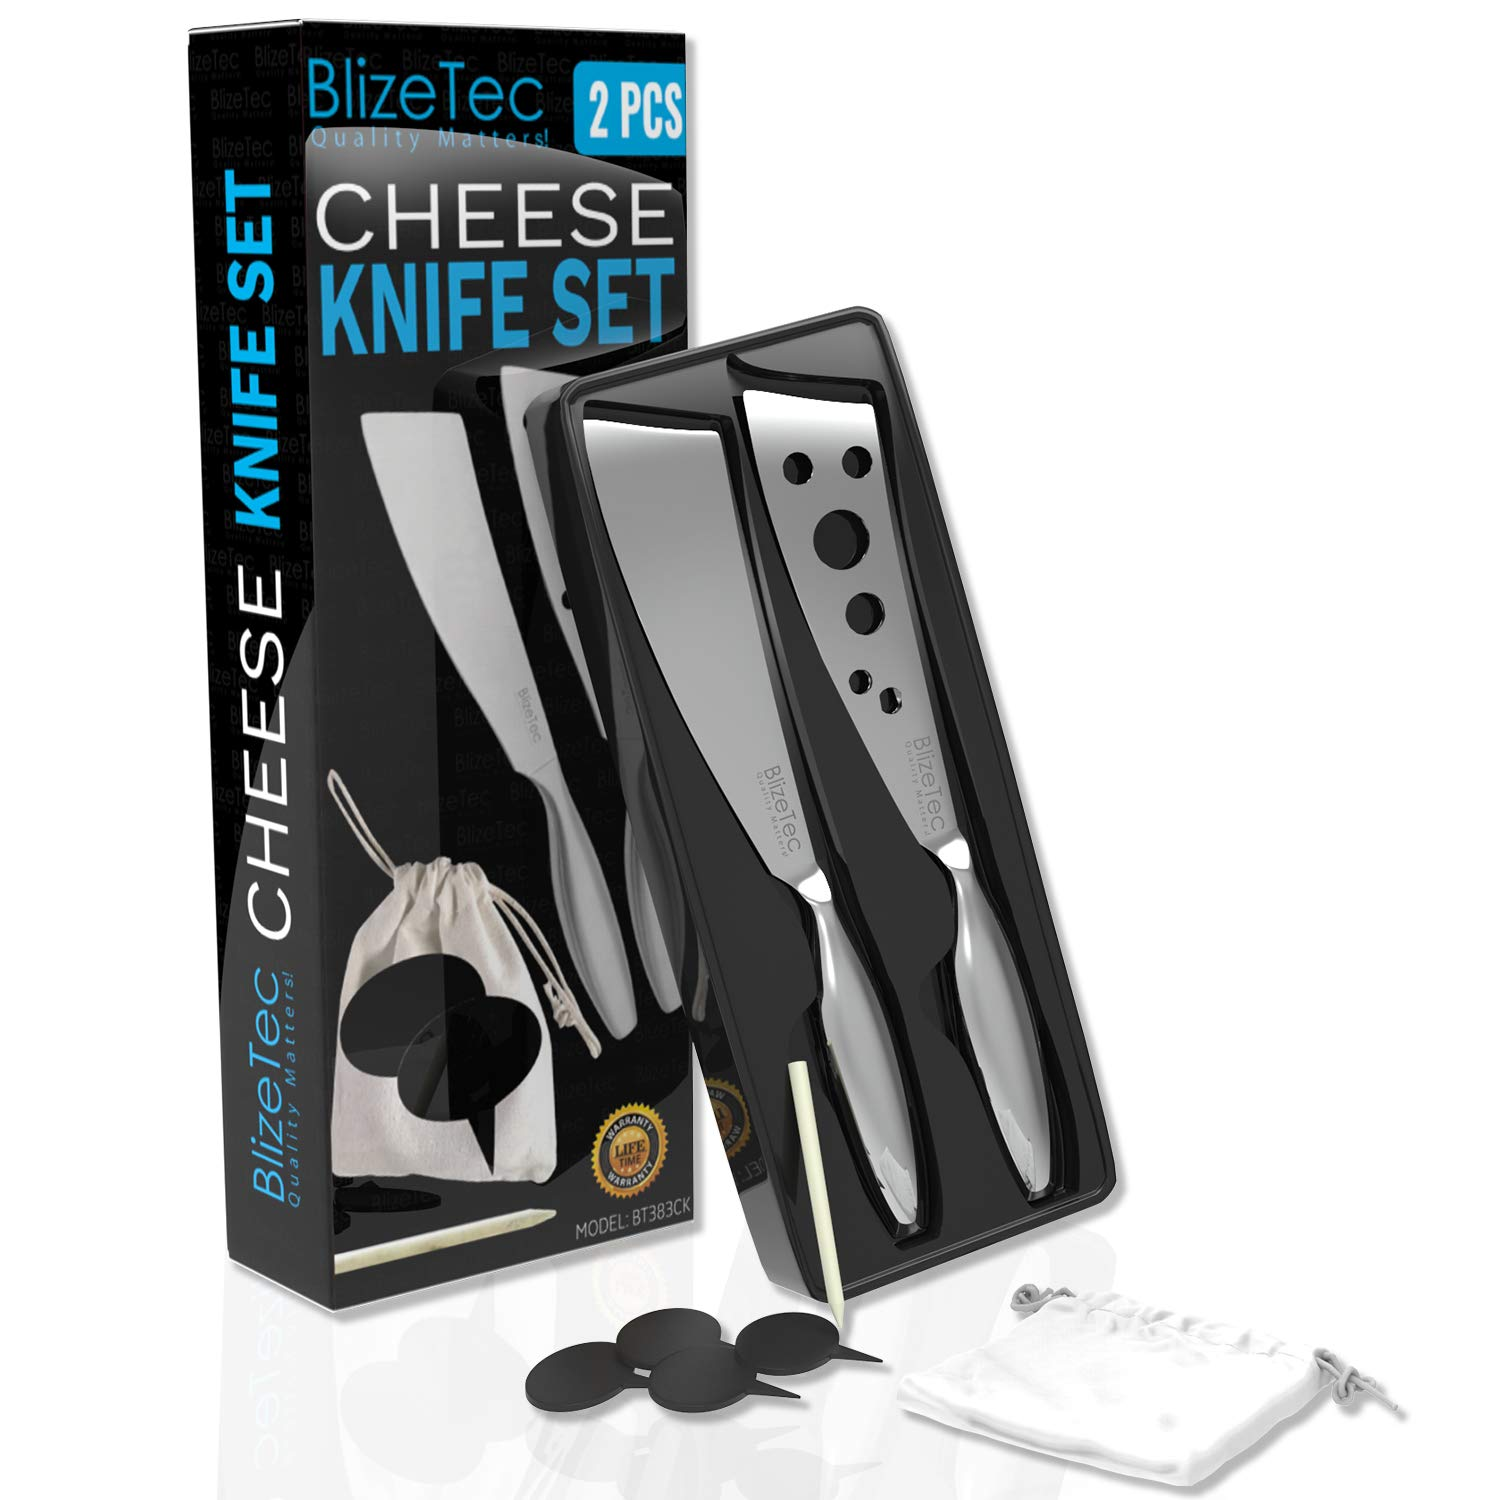 Cheese Knife Set: BlizeTec 2 Pcs Multipurpose Butter, Fruit and Dessert Knives with 4 Slate Markers, 1 Soapstone Chalk and 1 Gift Bag by BlizeTec